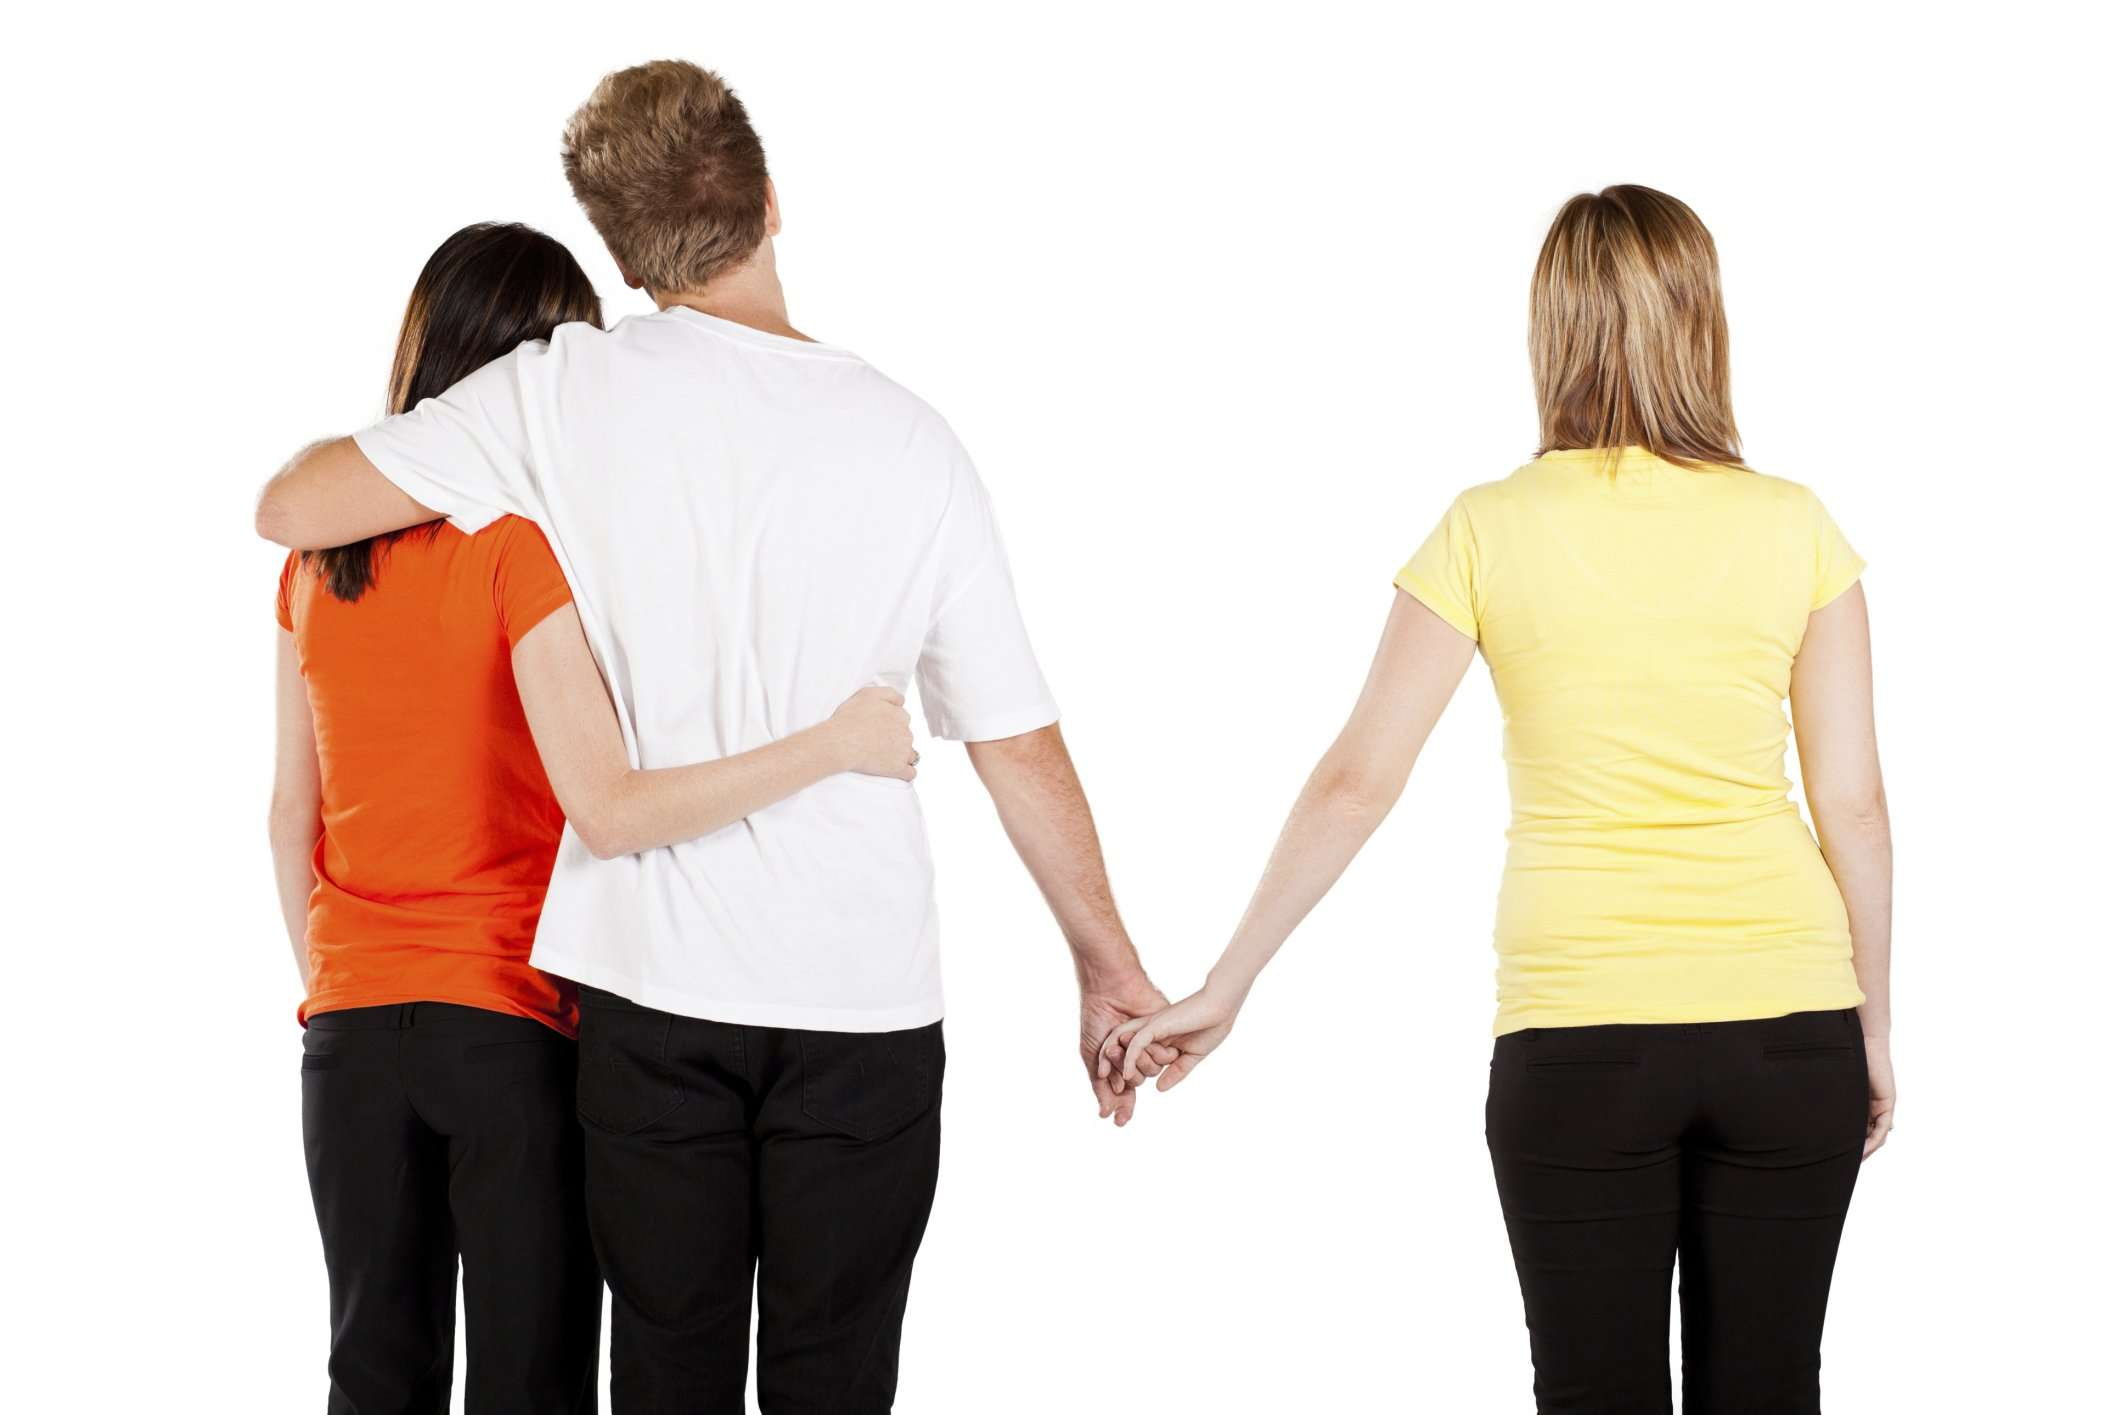 dating someone with family issues How many times have you had someone – a friend, a lover, even family  she had trust issues,  what will you put up with boundaries, self-esteem and dating .